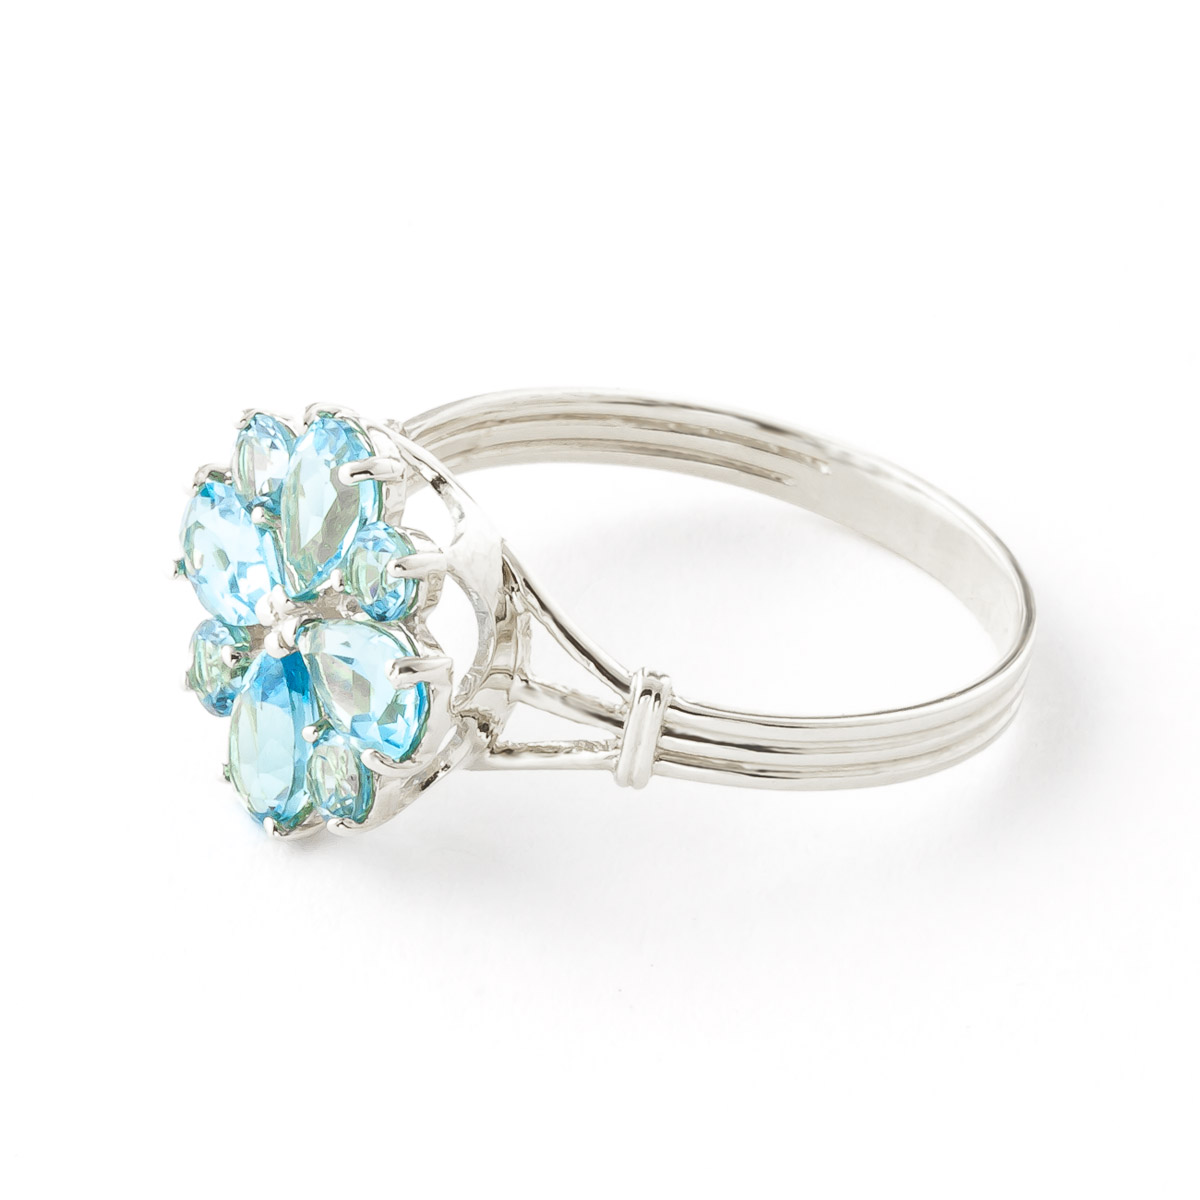 Blue Topaz Sunflower Cluster Ring 2.43 ctw in 9ct White Gold